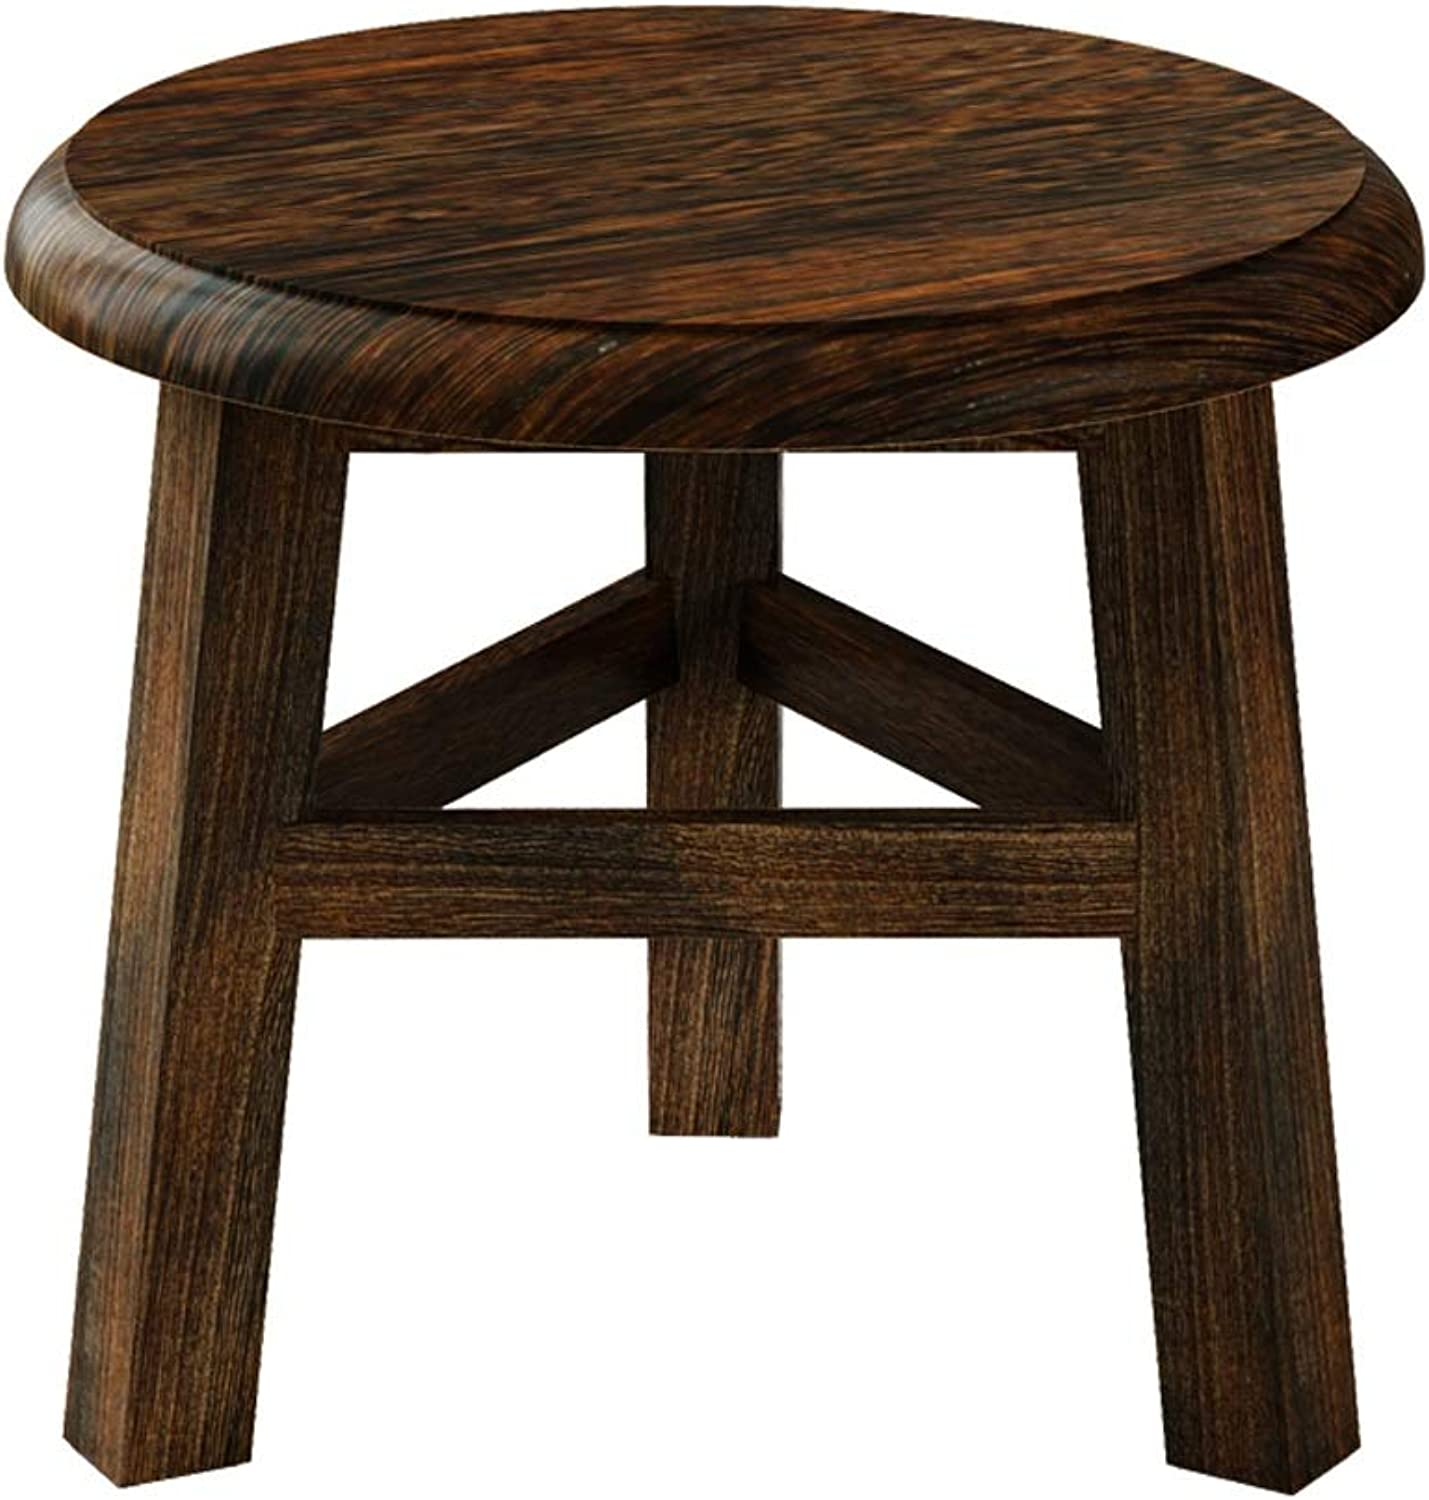 Small Stool Home Creative Sofa Stool Coffee Table Stool Modern Decoration Solid Wood Small Stool Change shoes Stool Adult Bench (color   Brown)